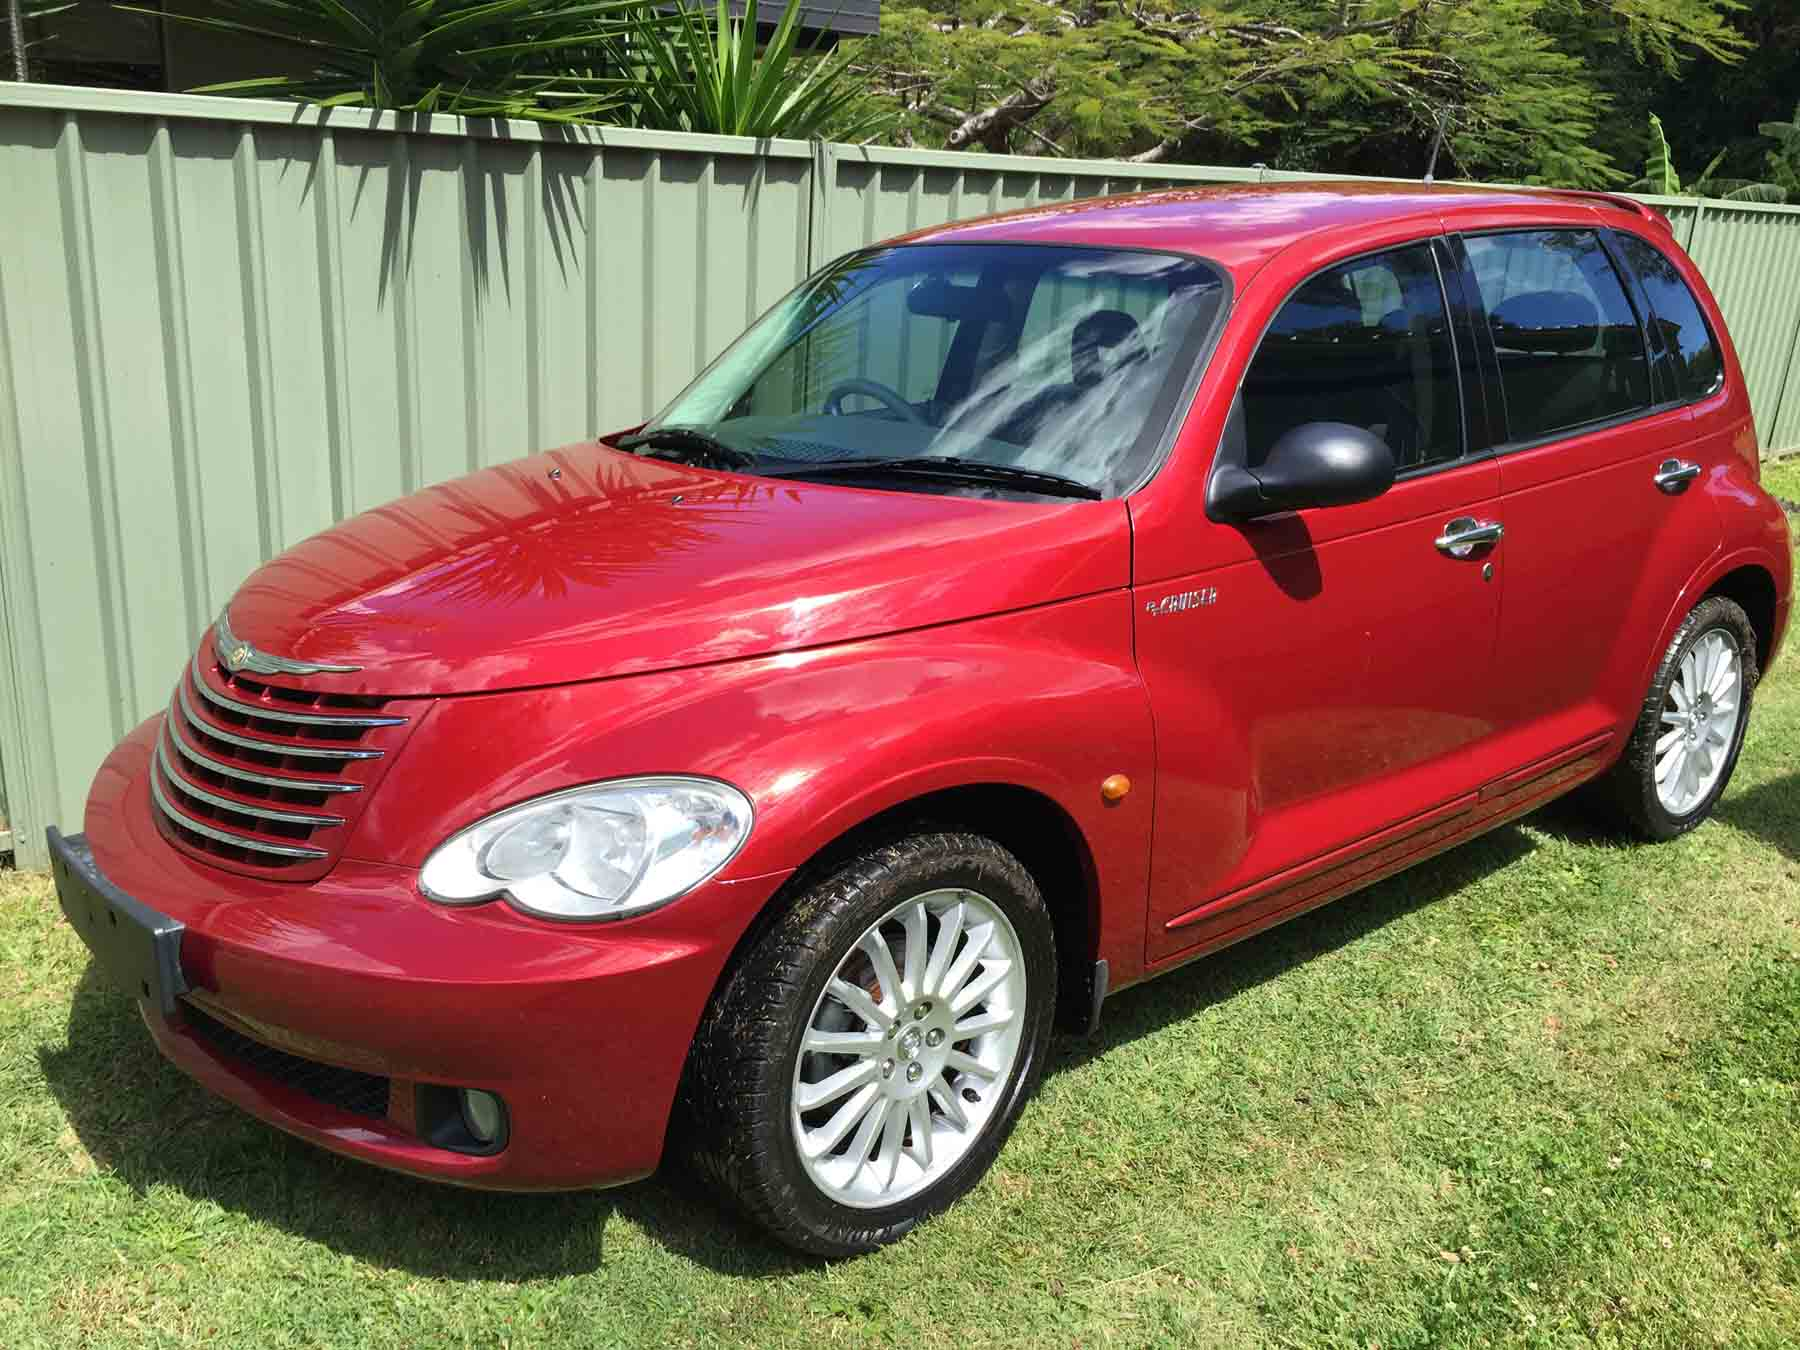 2005 Chrysler Pt Cruiser Red Used Vehicle Sales